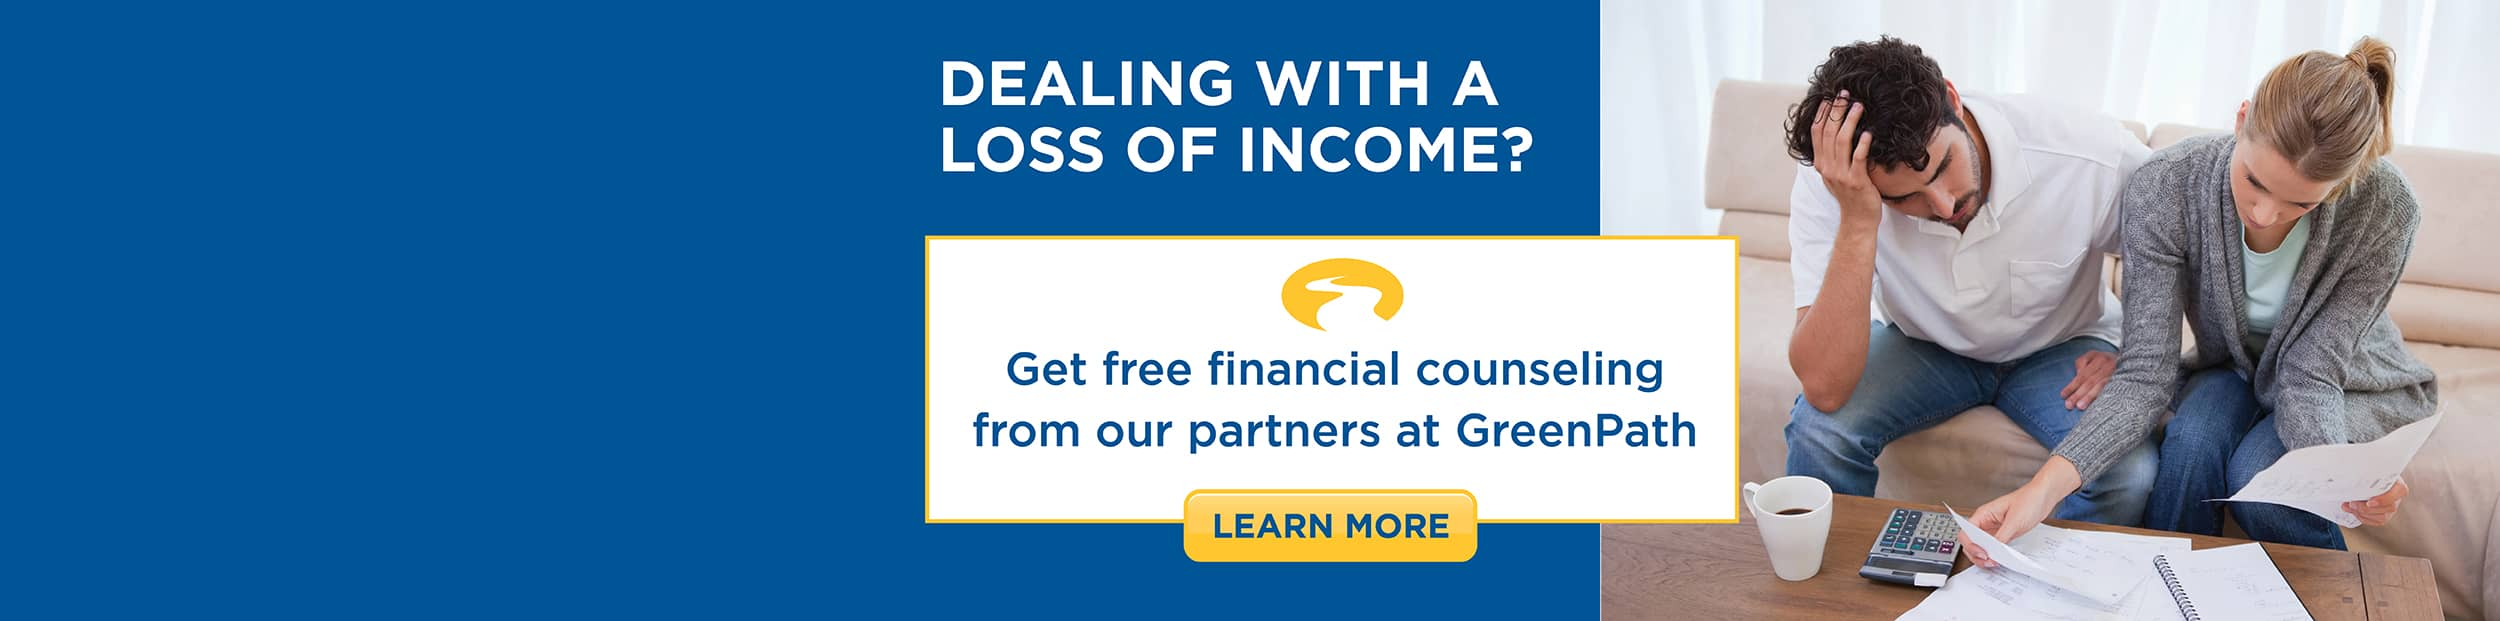 GreenPath Financial Counseling web banner featuring a frustrated couple reviewing their finances.